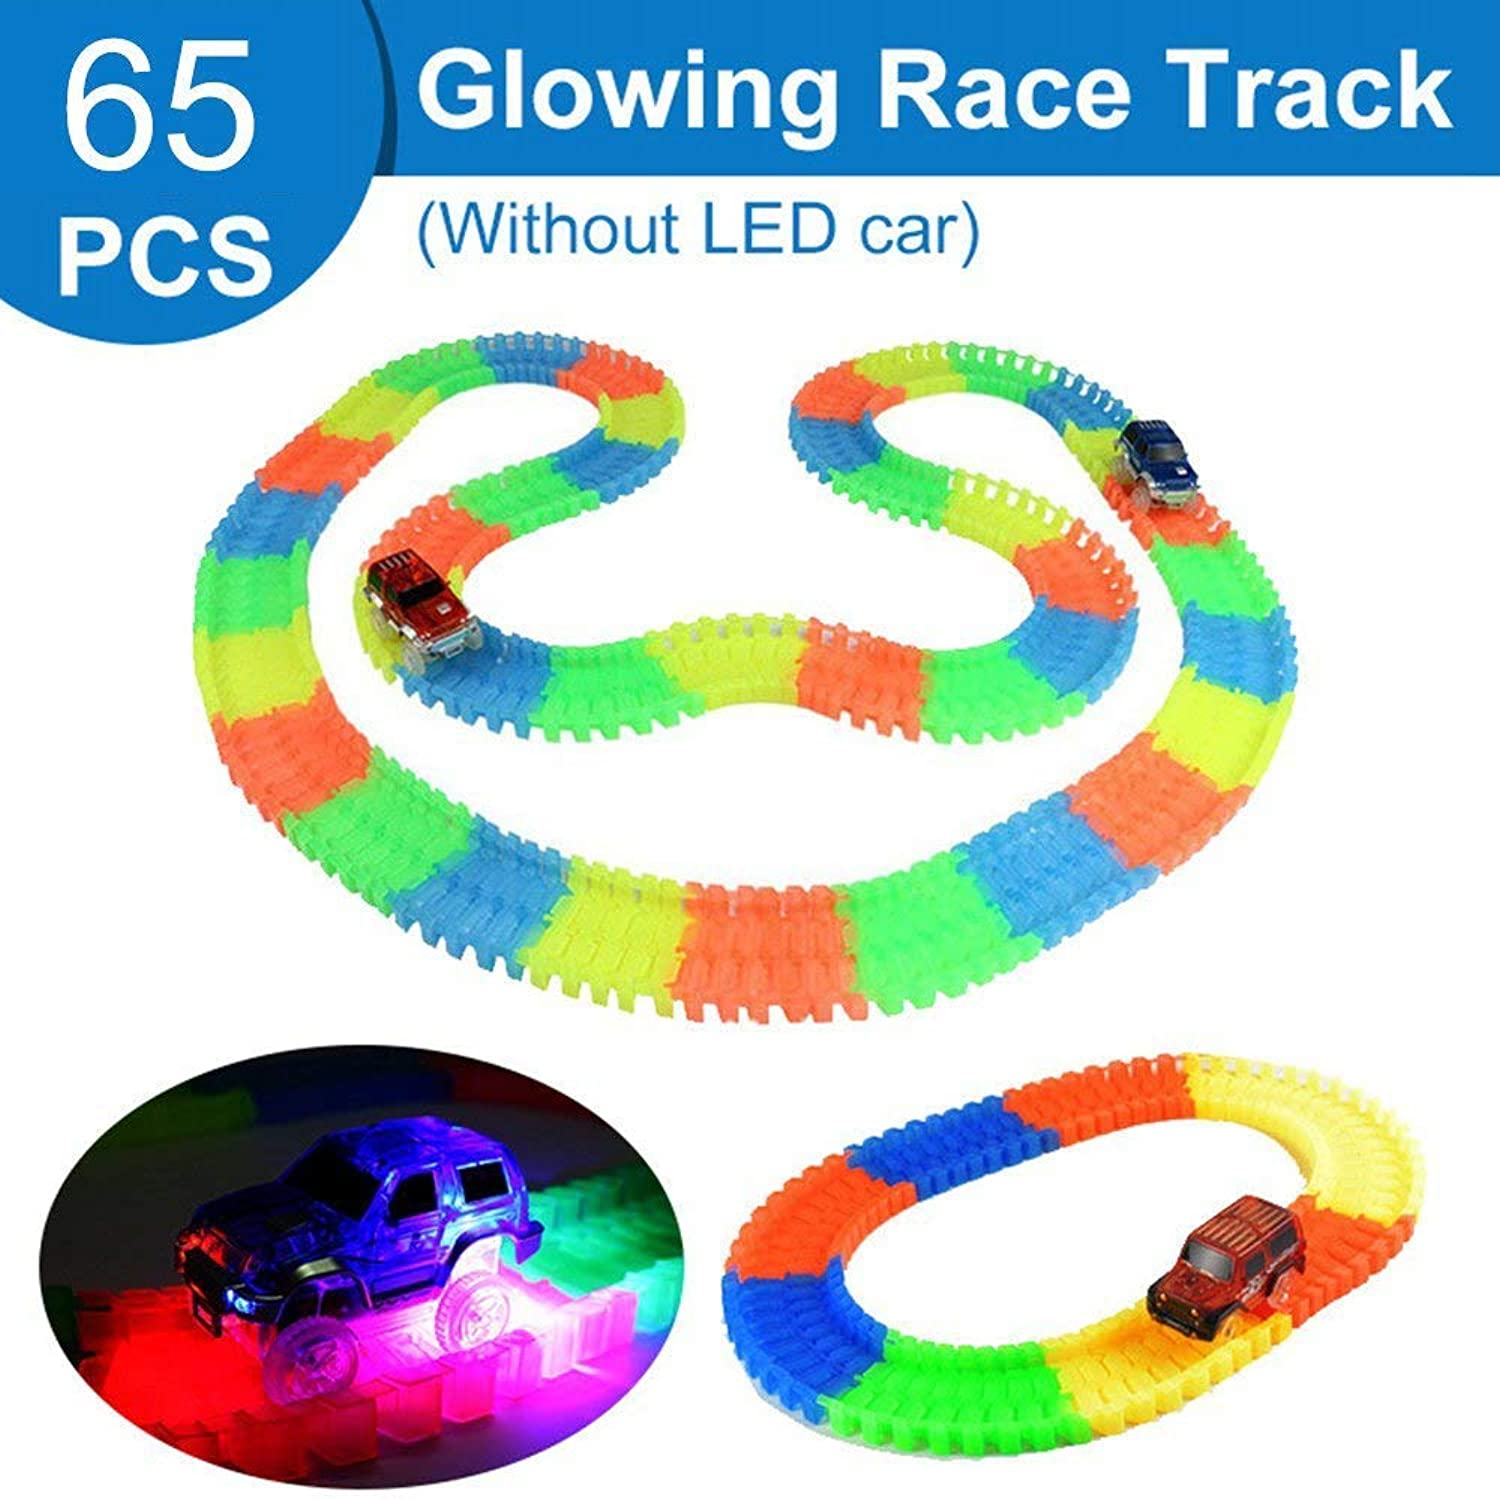 DIY Turntable Lift Accessories Miraculous Glowing Race Track Bend Flex Flash in The Dark Assembly Car Toy Glow Racing Track Set 65pcs Without car